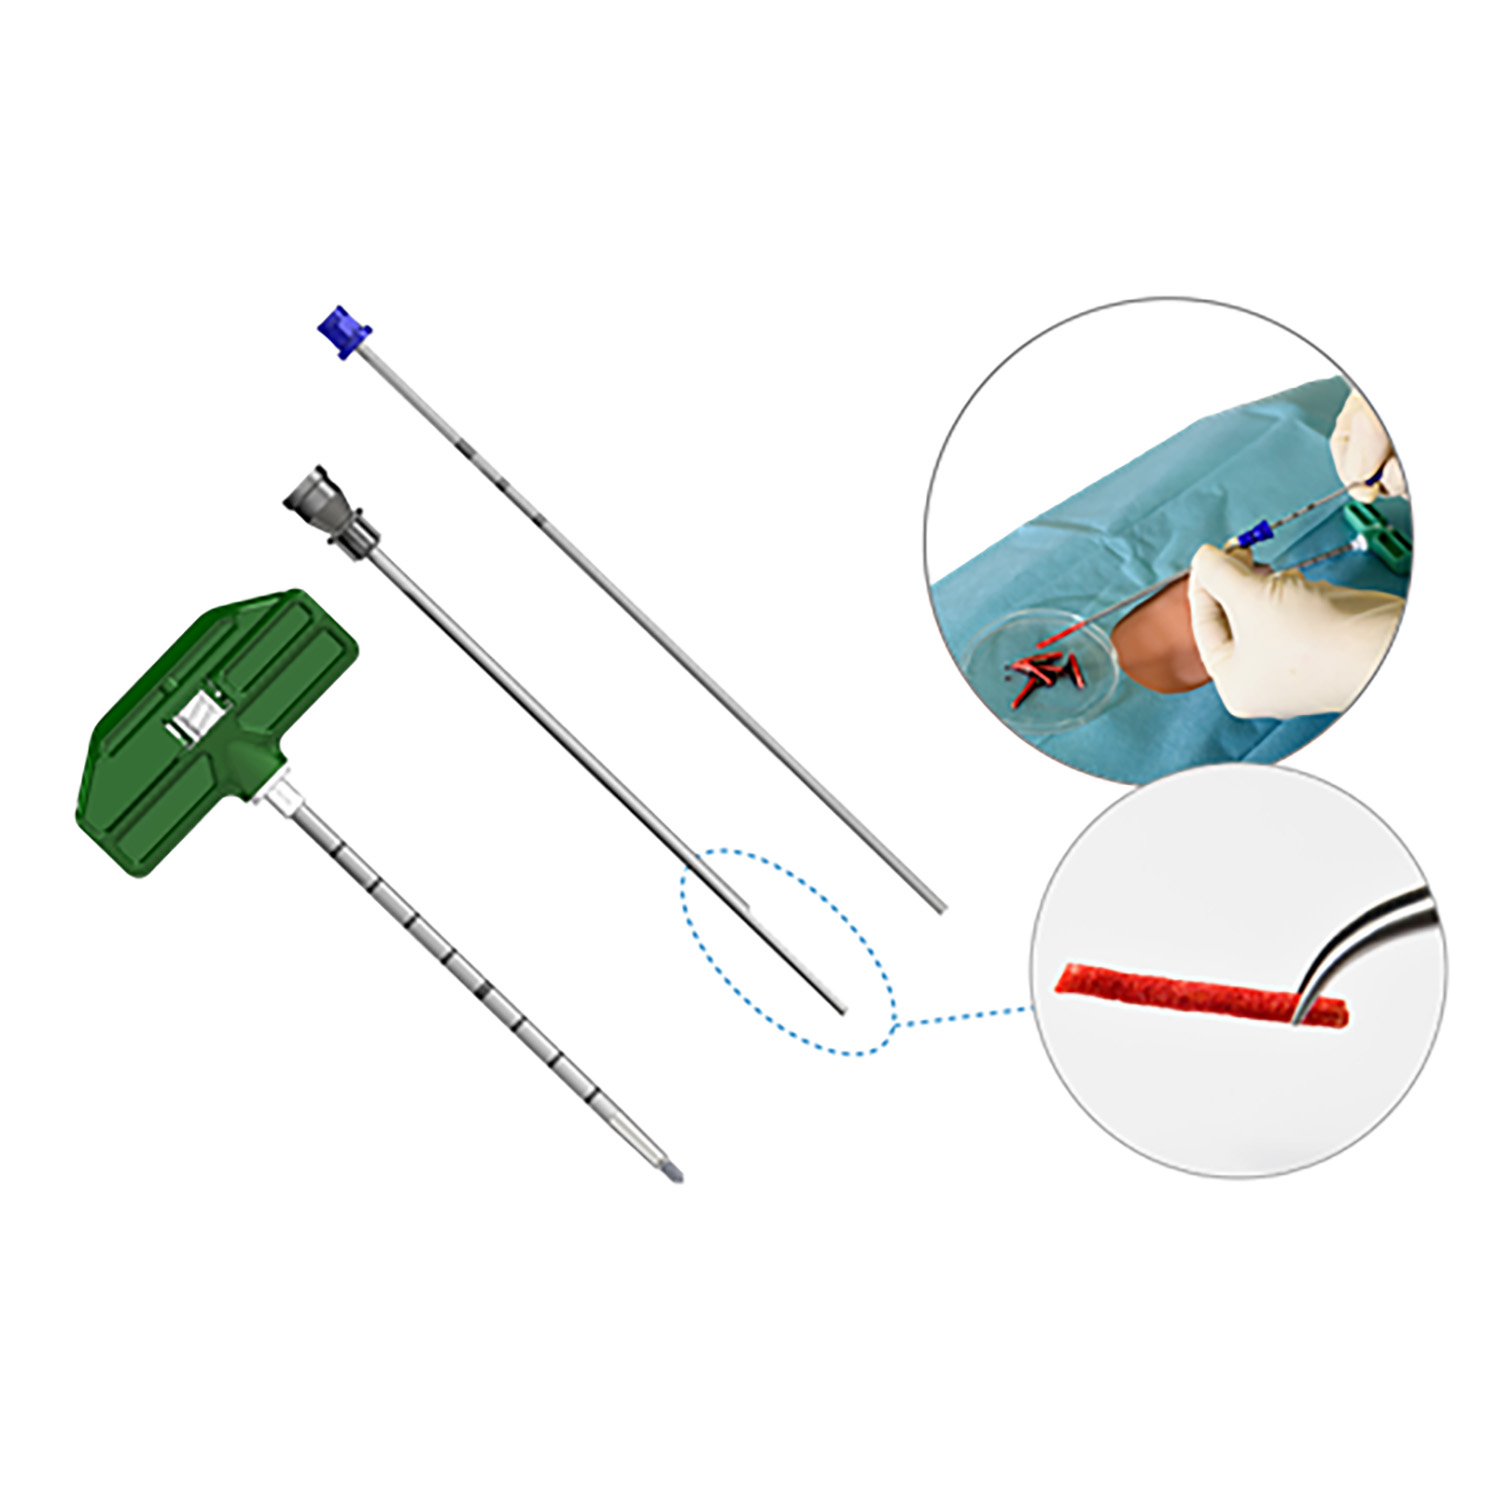 Marrow Cellution™ and Percutaneous Cancellous Bone Harvesting Procedure Kit